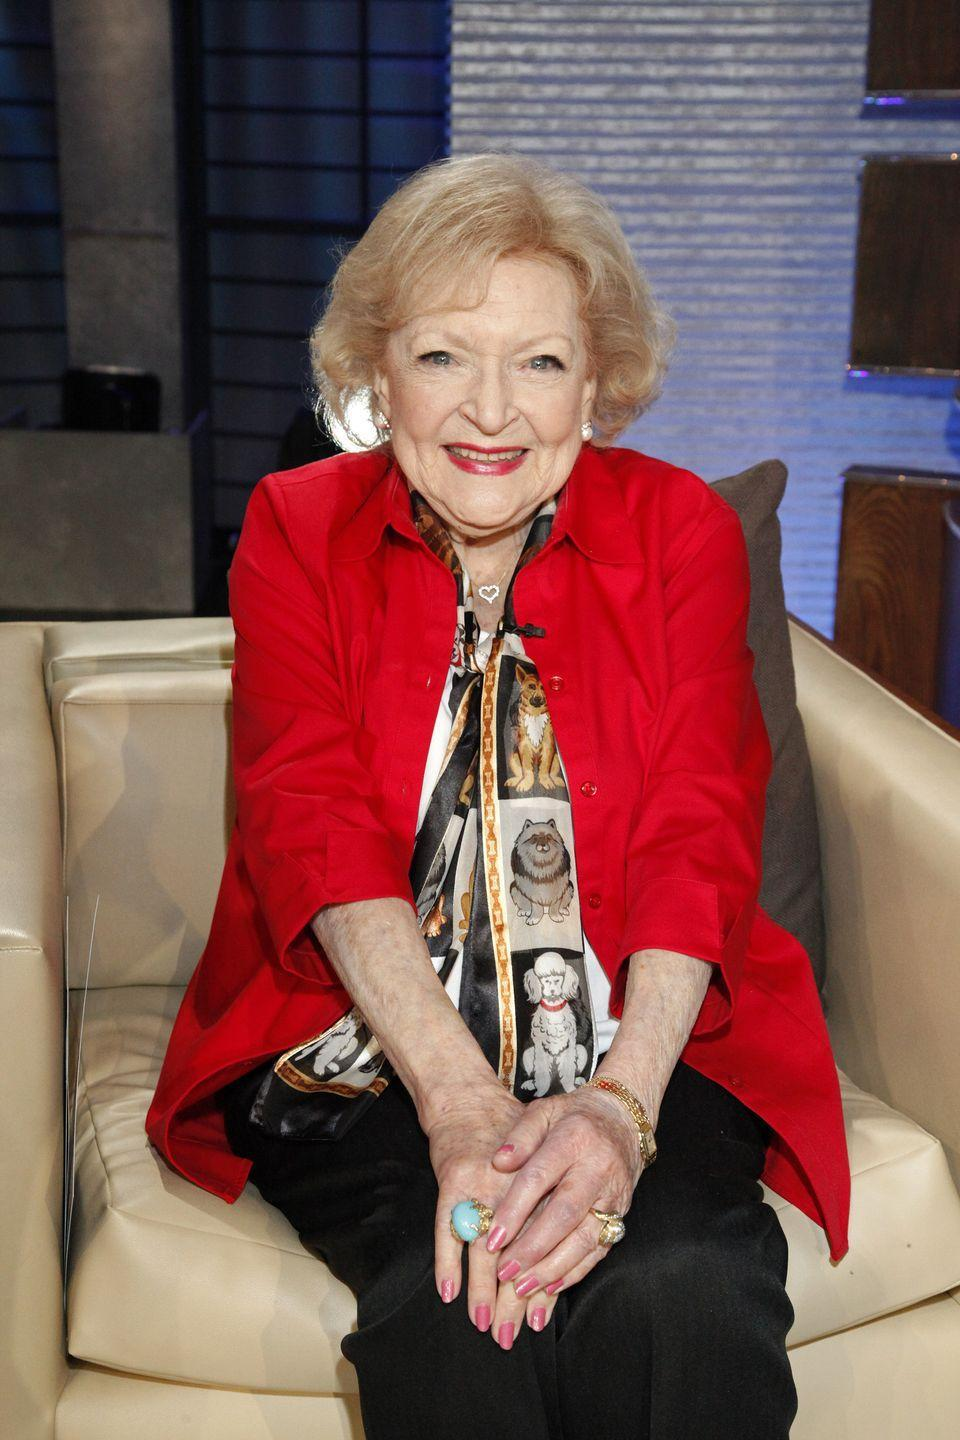 """<p><strong>The role: </strong><a href=""""https://theblast.com/113884/spotlight-golden-girl-betty-white"""" rel=""""nofollow noopener"""" target=""""_blank"""" data-ylk=""""slk:Blanche Devereaux"""" class=""""link rapid-noclick-resp"""">Blanche Devereaux</a> in<em> Golden Girls</em></p><p><strong>Who *actually* played it:</strong> Rue McClanahan</p><p><strong>The role they played instead: </strong>Rose Nylund</p><p>The<em> Golden Girls</em> producers originally wanted White to play Blanche, but then they had second thoughts. They feared Blanche would be too similar to a previous role White had as Sue in <em>The Mary Tyler Moore Show</em>. So, they pulled a switch. <br></p>"""